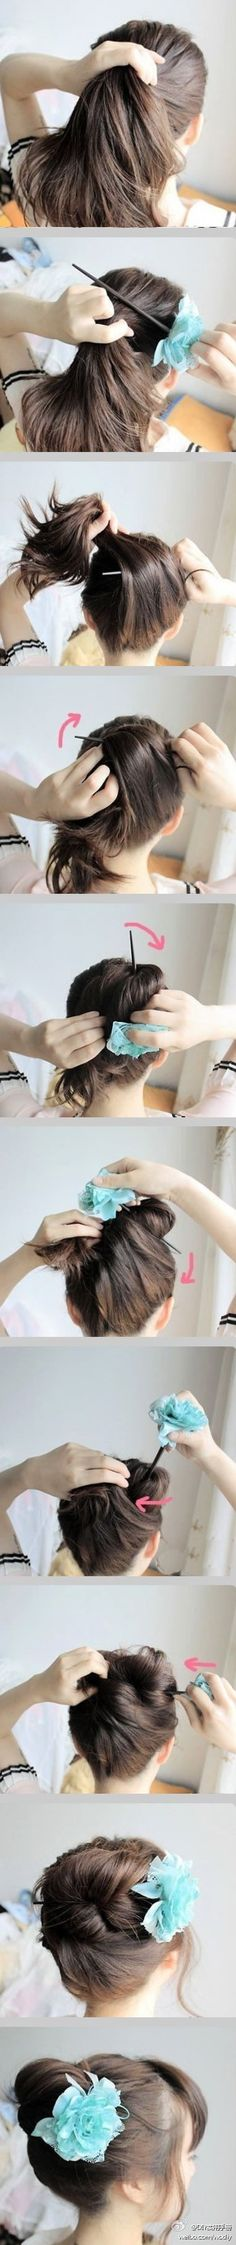 Chopstick hair bun